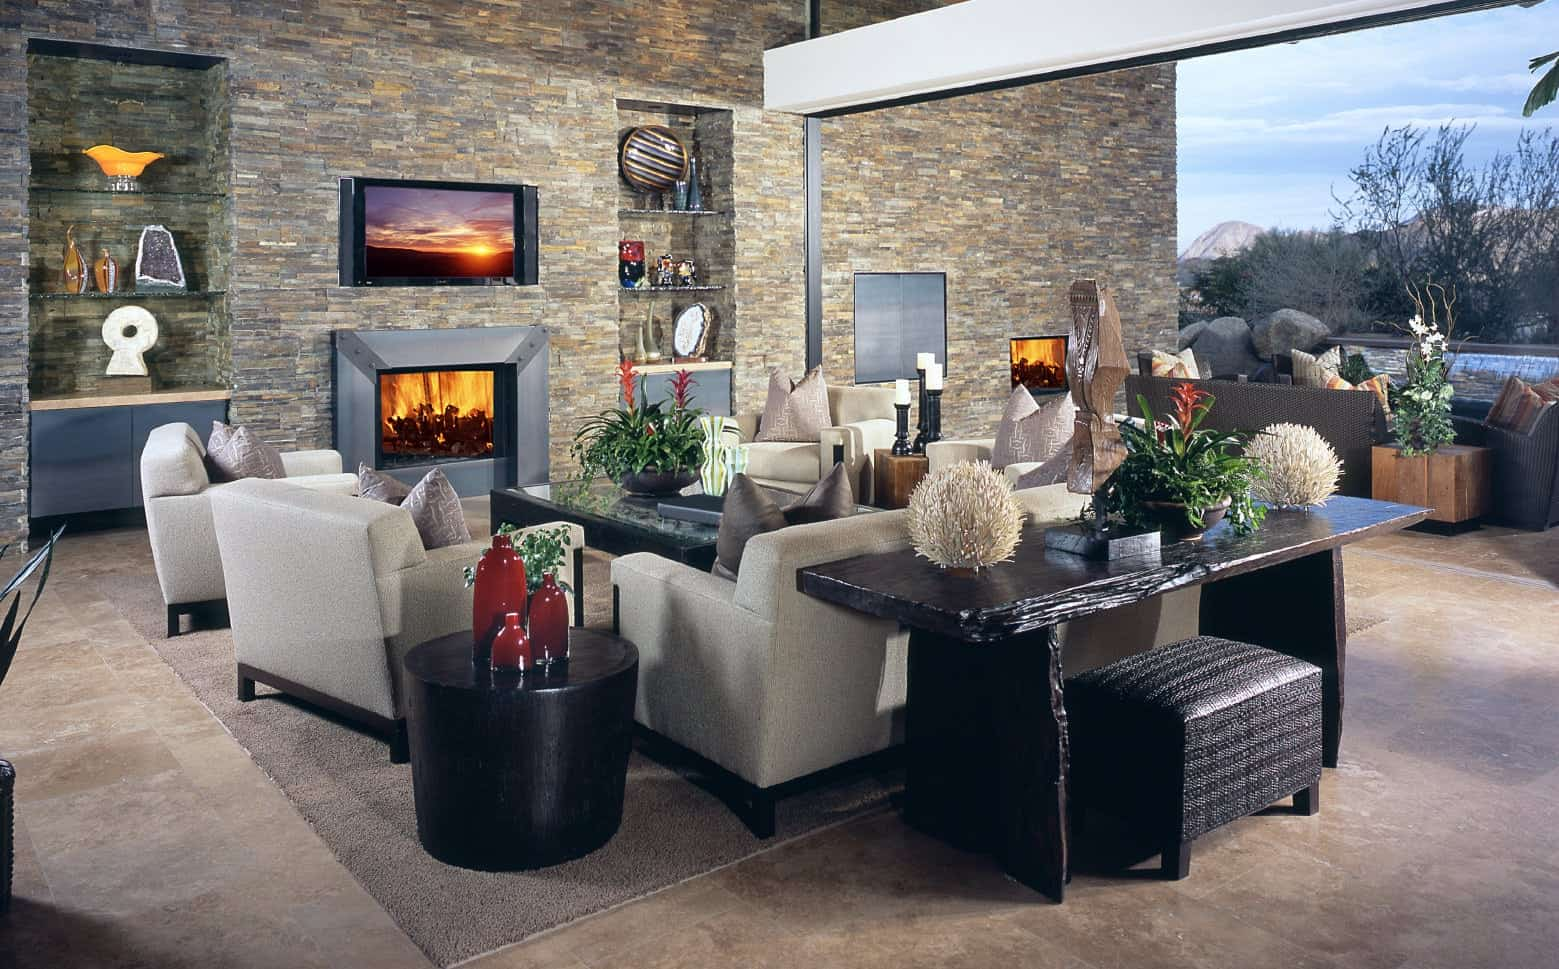 Contemporary living room with stone brick wall and a fireplace.